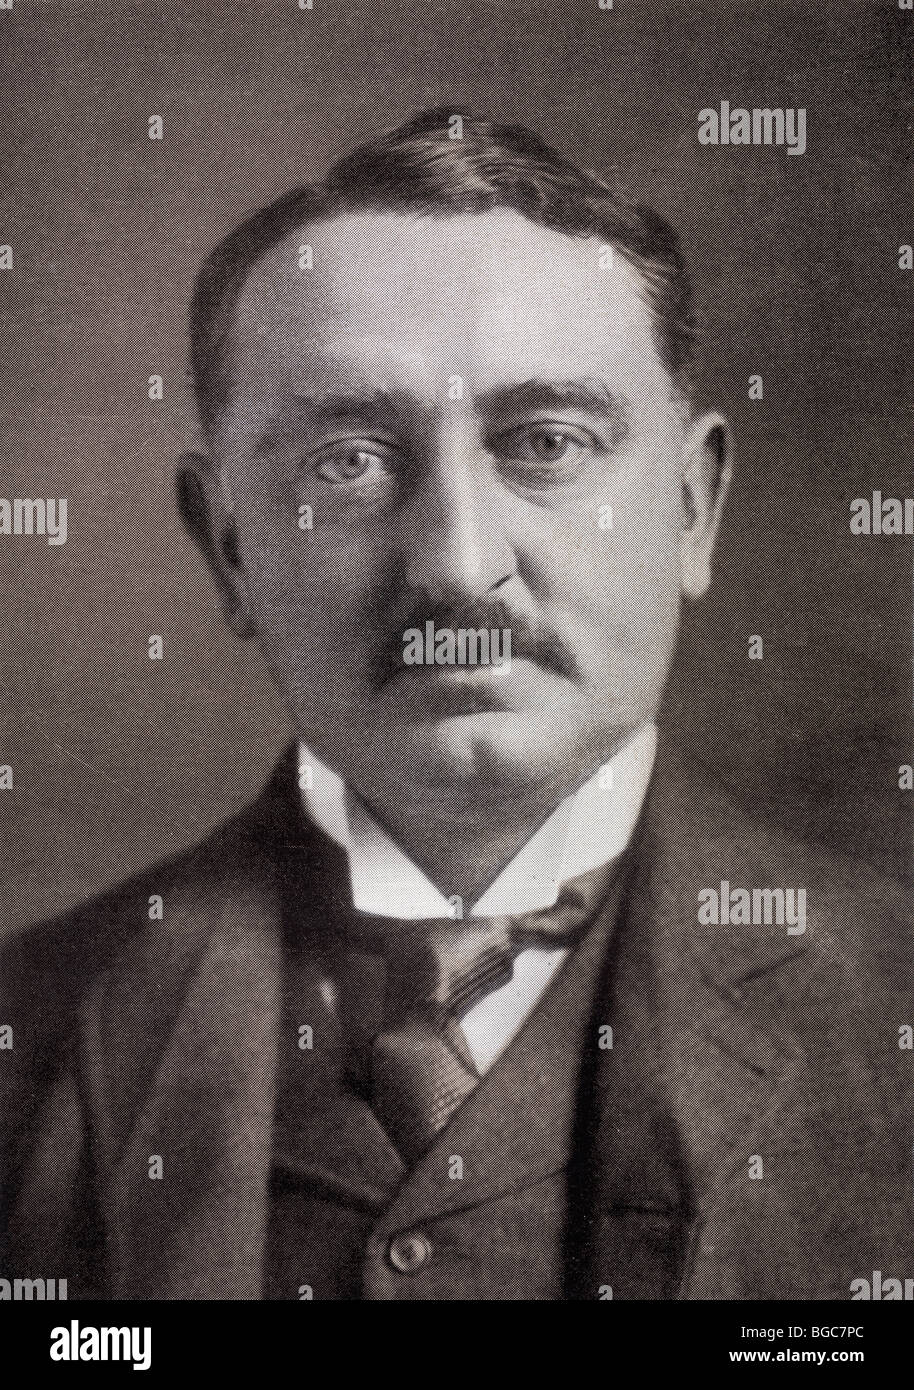 Cecil John Rhodes, 1853 - 1902. English-born, mining magnate and politician in South Africa. - Stock Image